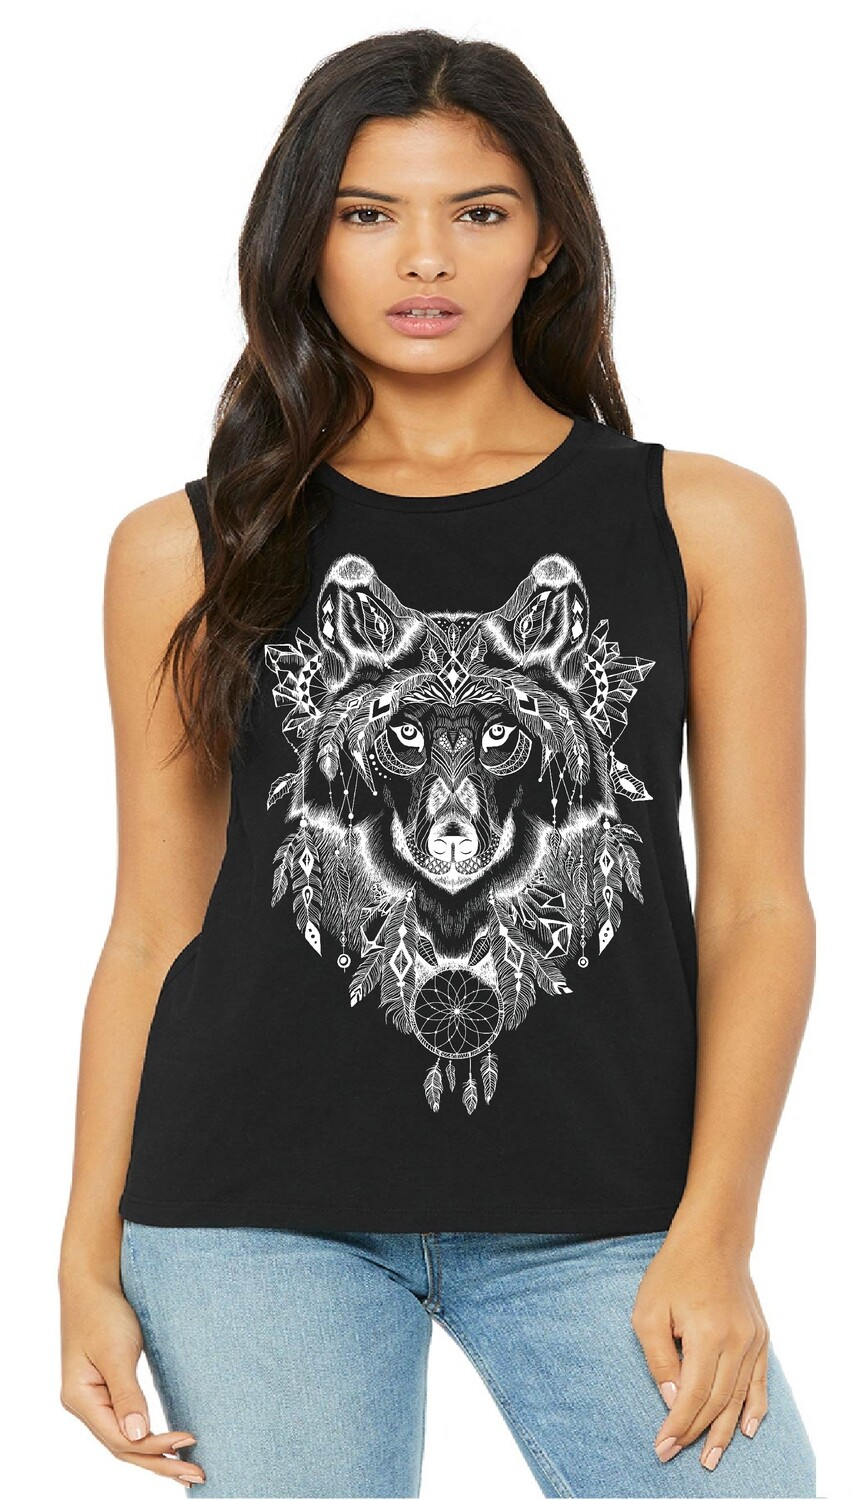 NATIVE WOLF DREAM CATCHER LADIES TOP  FREE SHIPPING